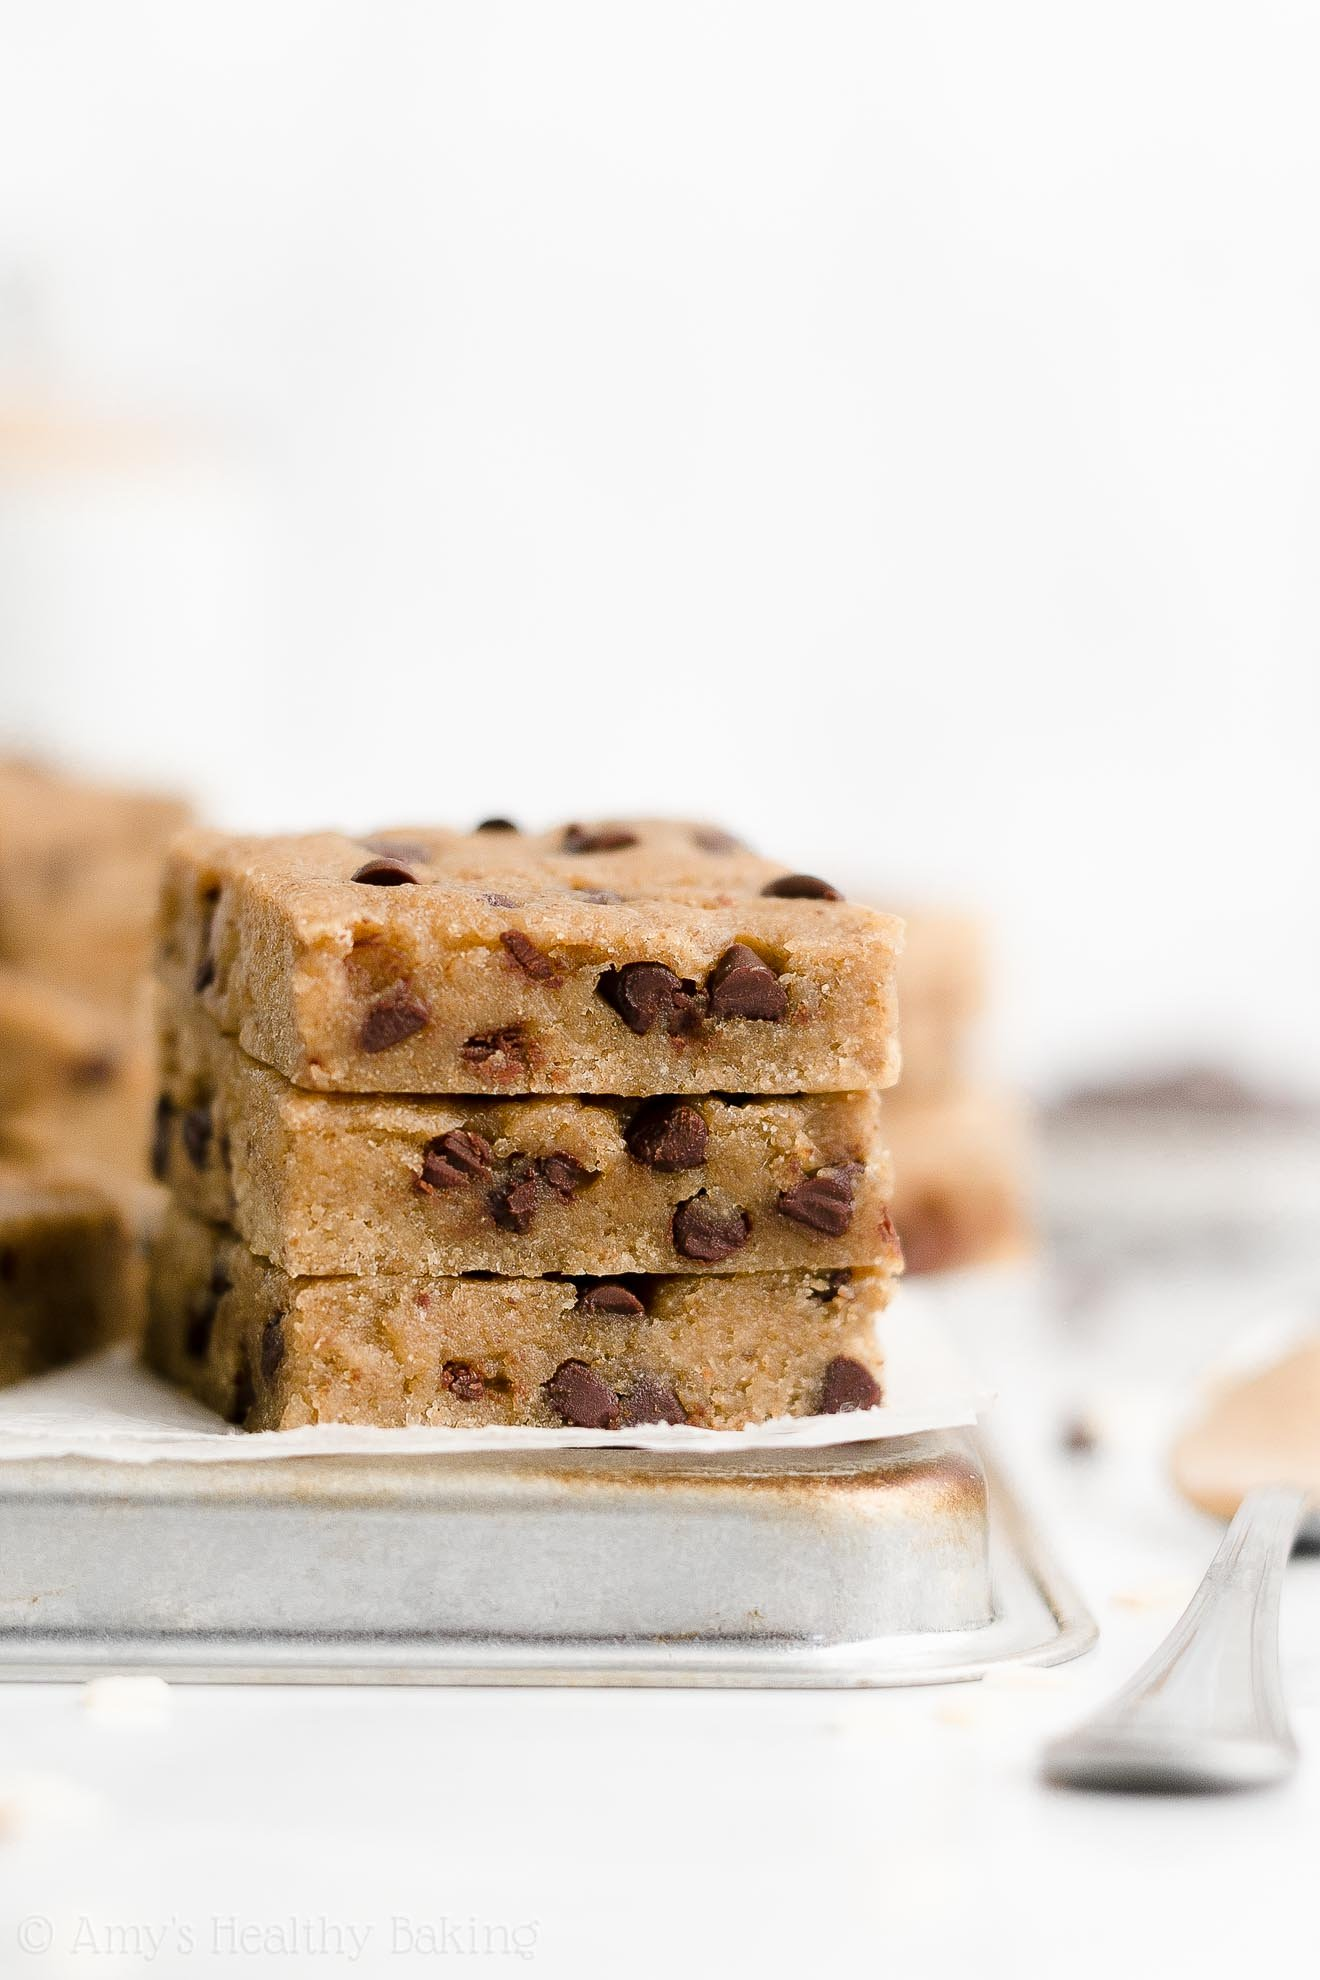 Healthy Clean Eating Weight Watchers Chocolate Chip Almond Butter Cookie Bars